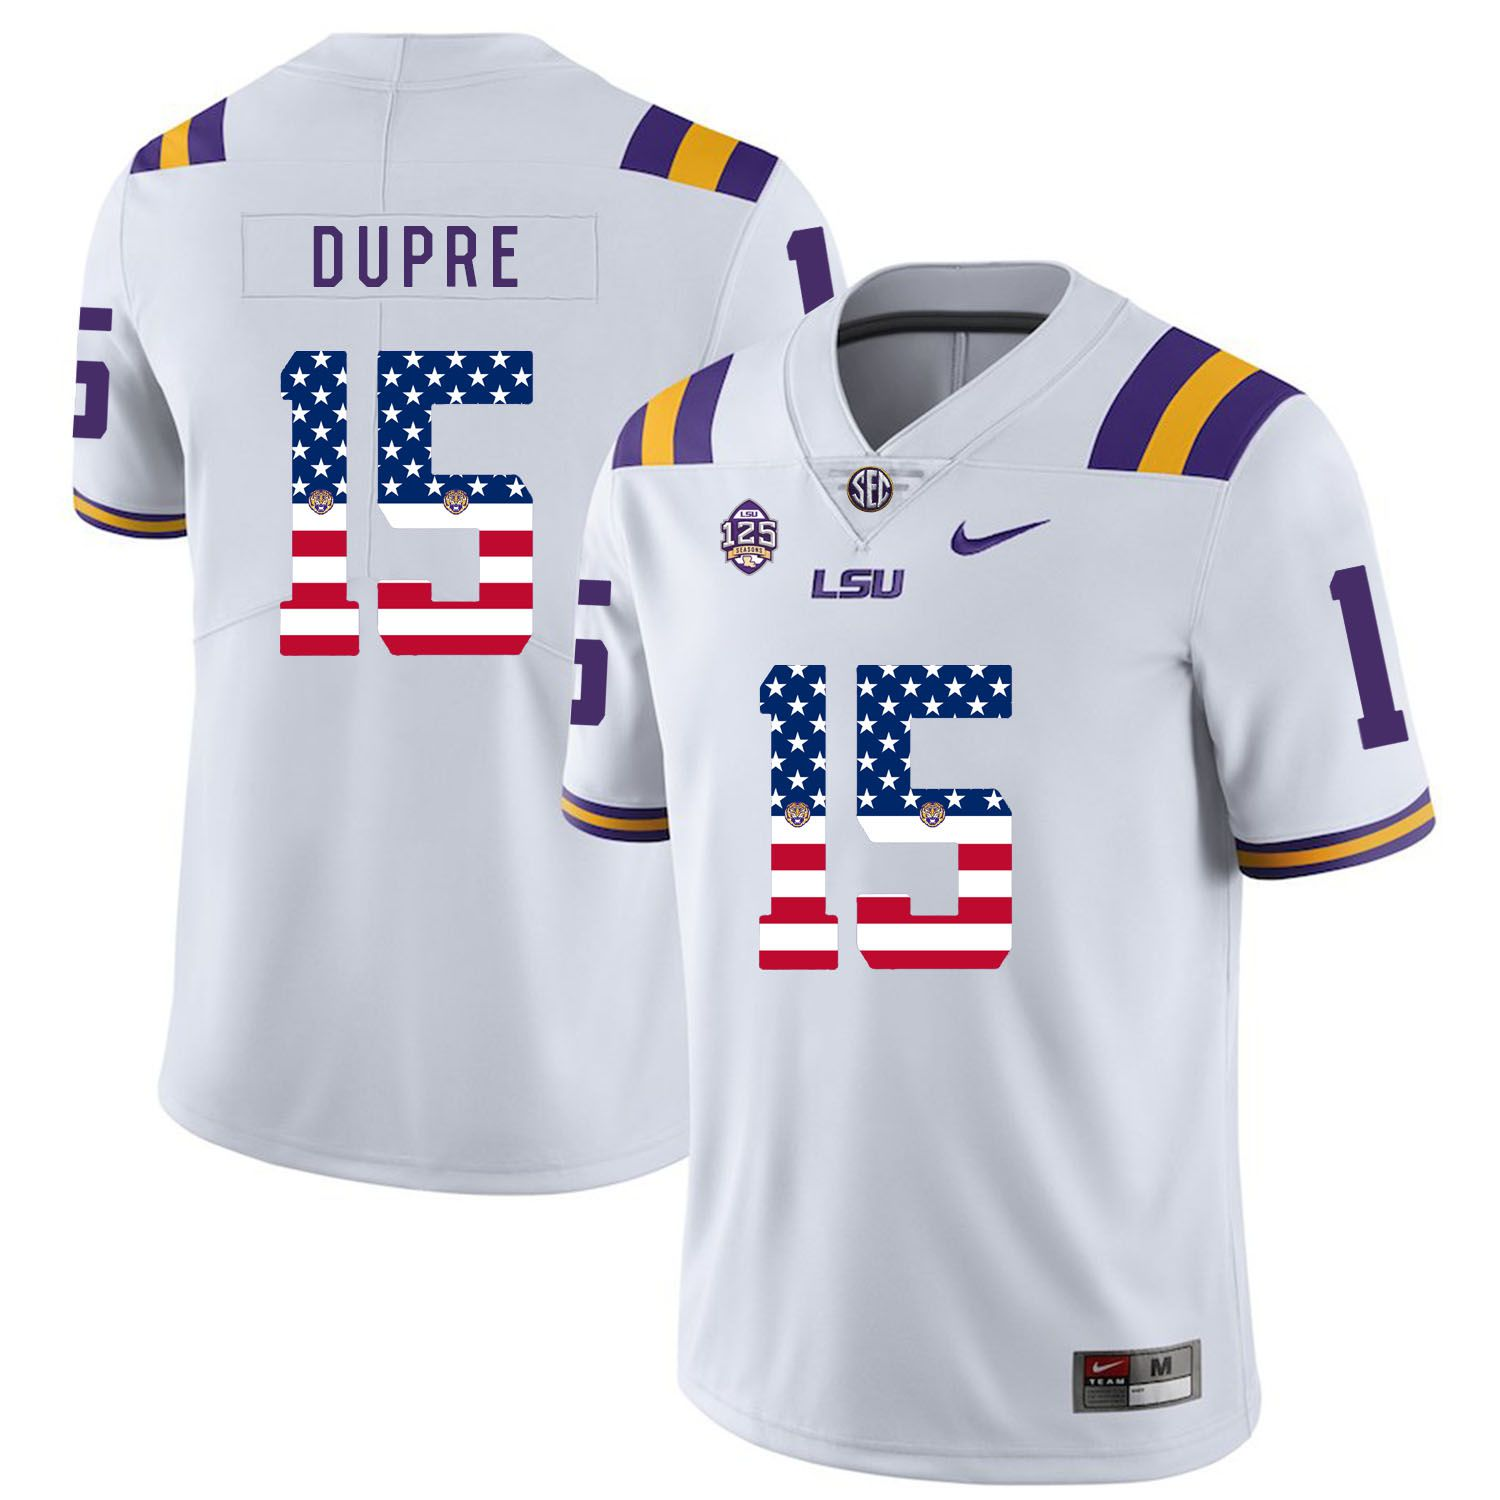 Men LSU Tigers 15 Dupre White Flag Customized NCAA Jerseys